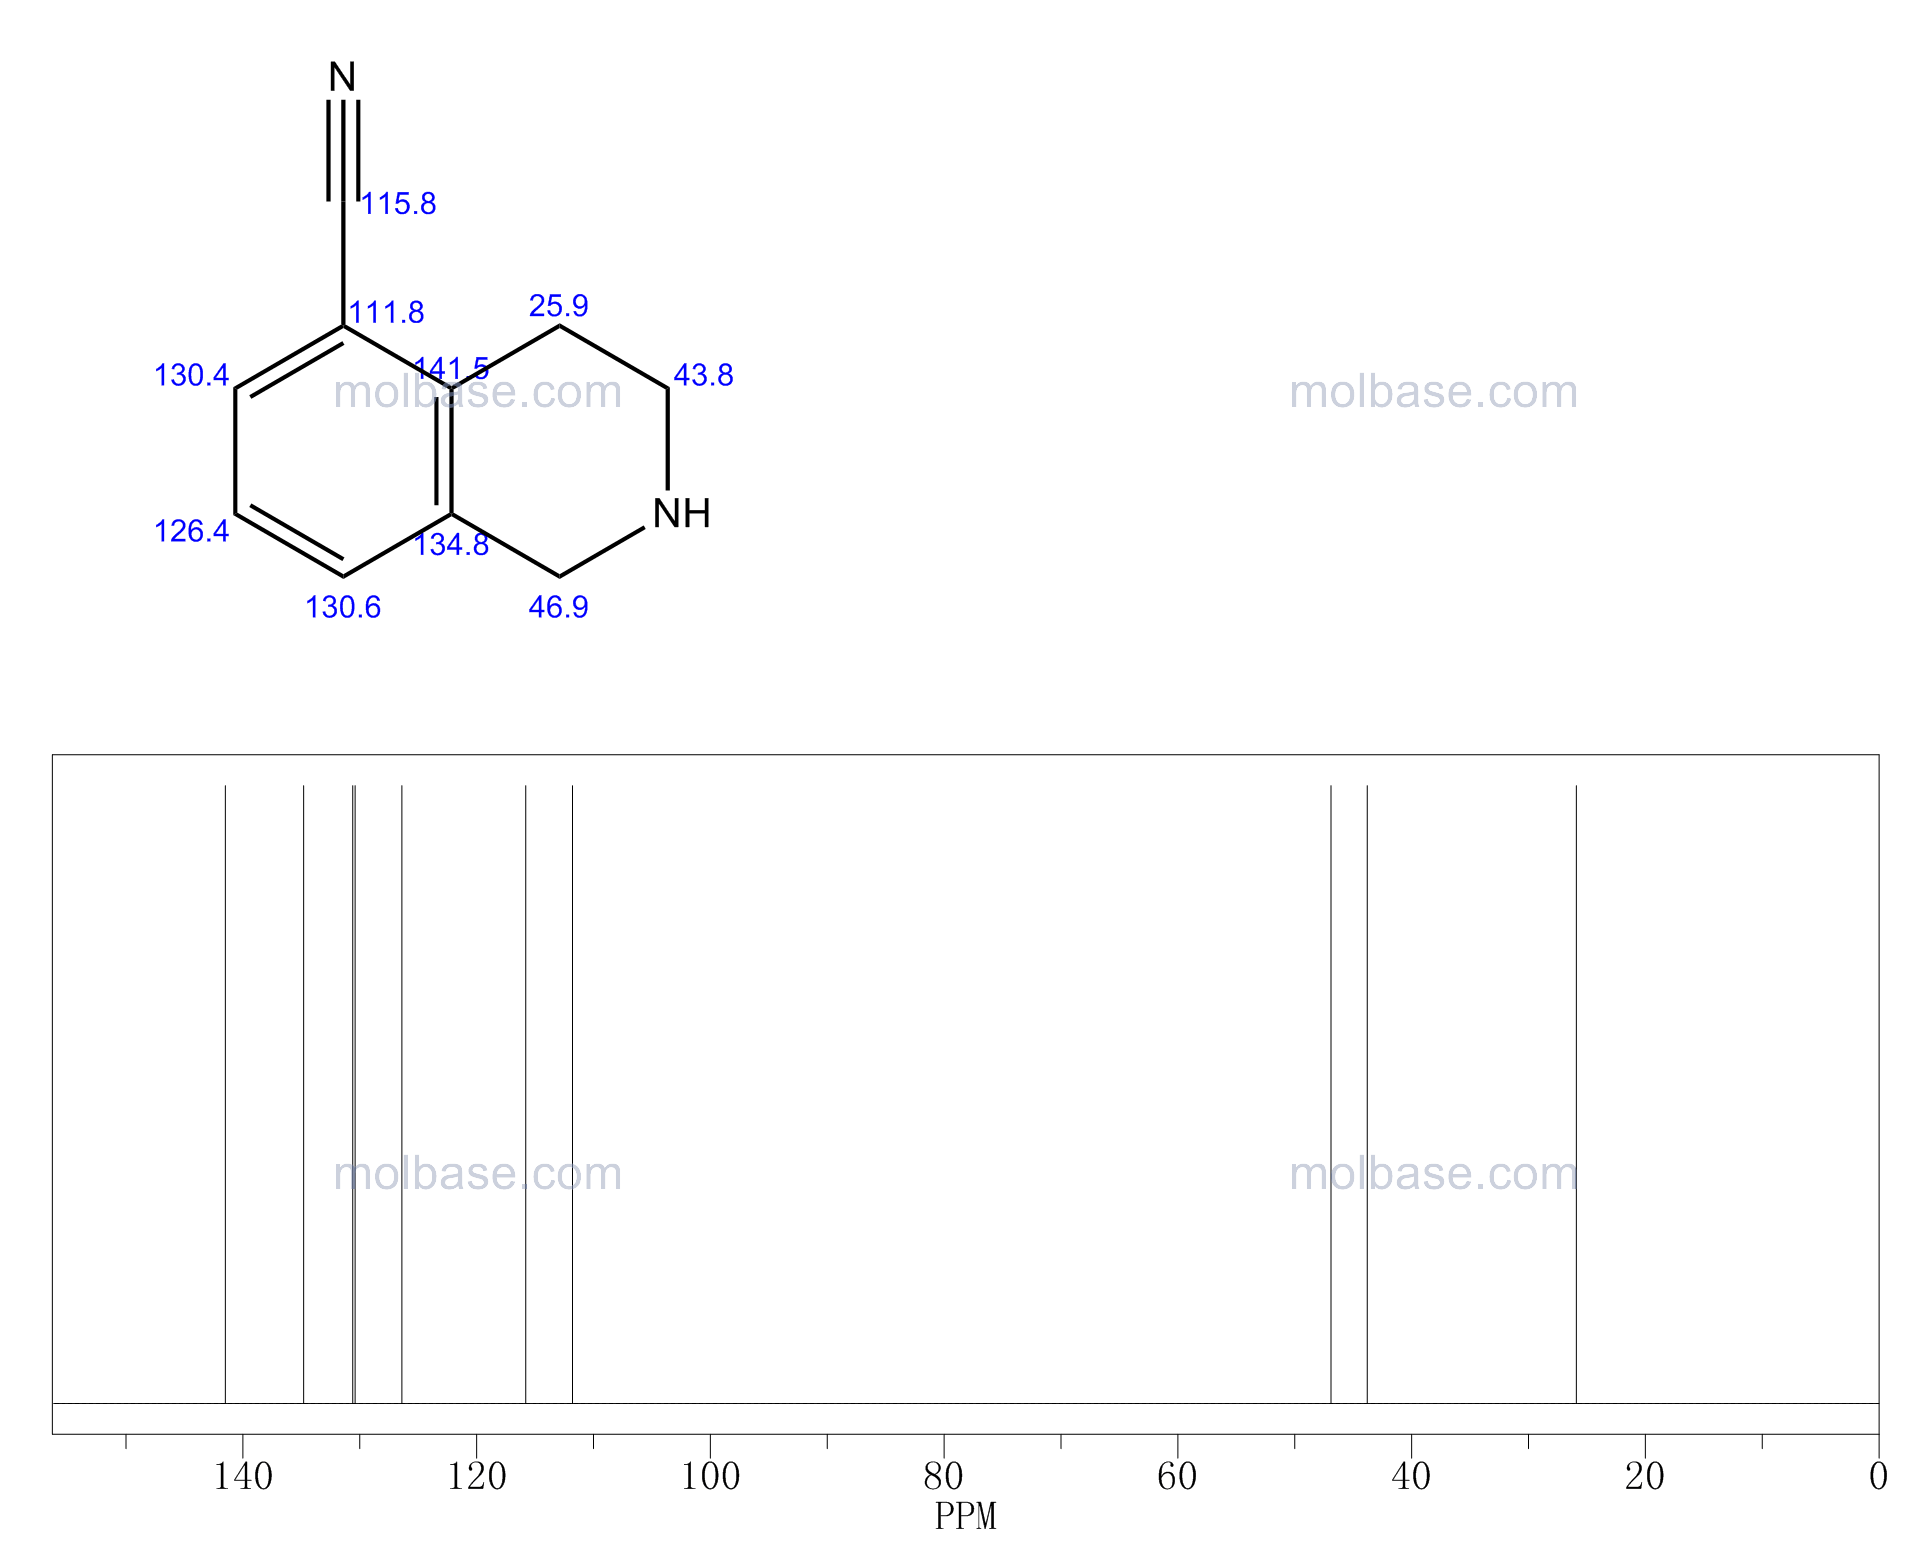 1,2,3,4-tetrahydroisoquinoline-5-carbonitrile NMR spectra analysis, Chemical CAS NO. 215794-24-4 NMR spectral analysis, 1,2,3,4-tetrahydroisoquinoline-5-carbonitrile C-NMR spectrum